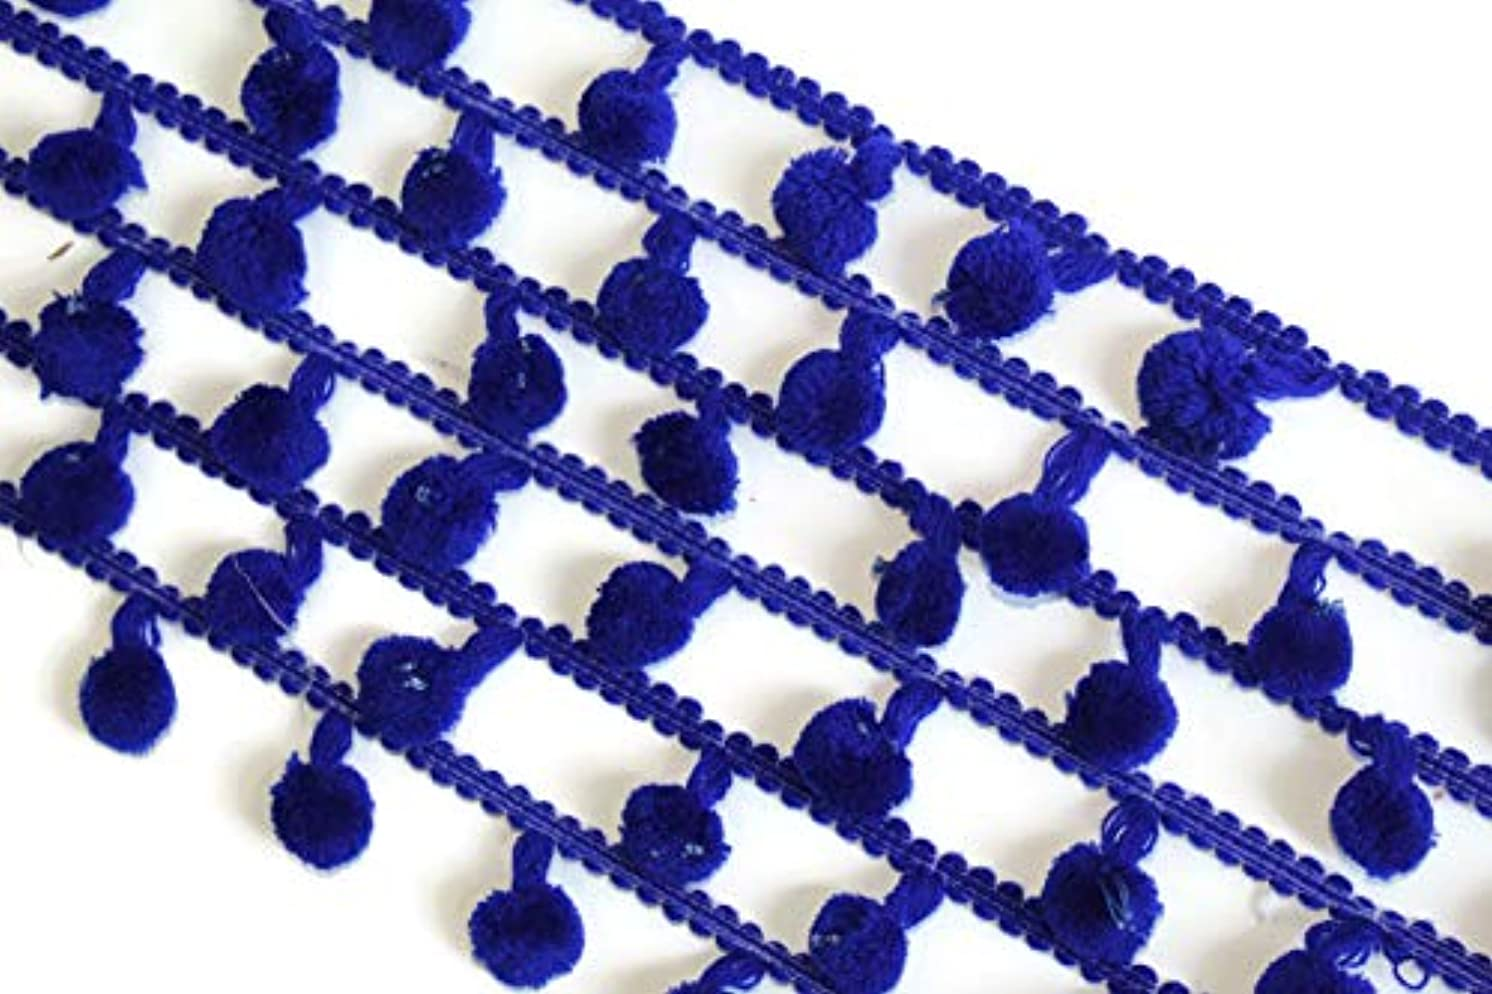 09 Yards of Indian Blue Pompom Trim Craft Supplies Handmade DIY by iDukaancrafts